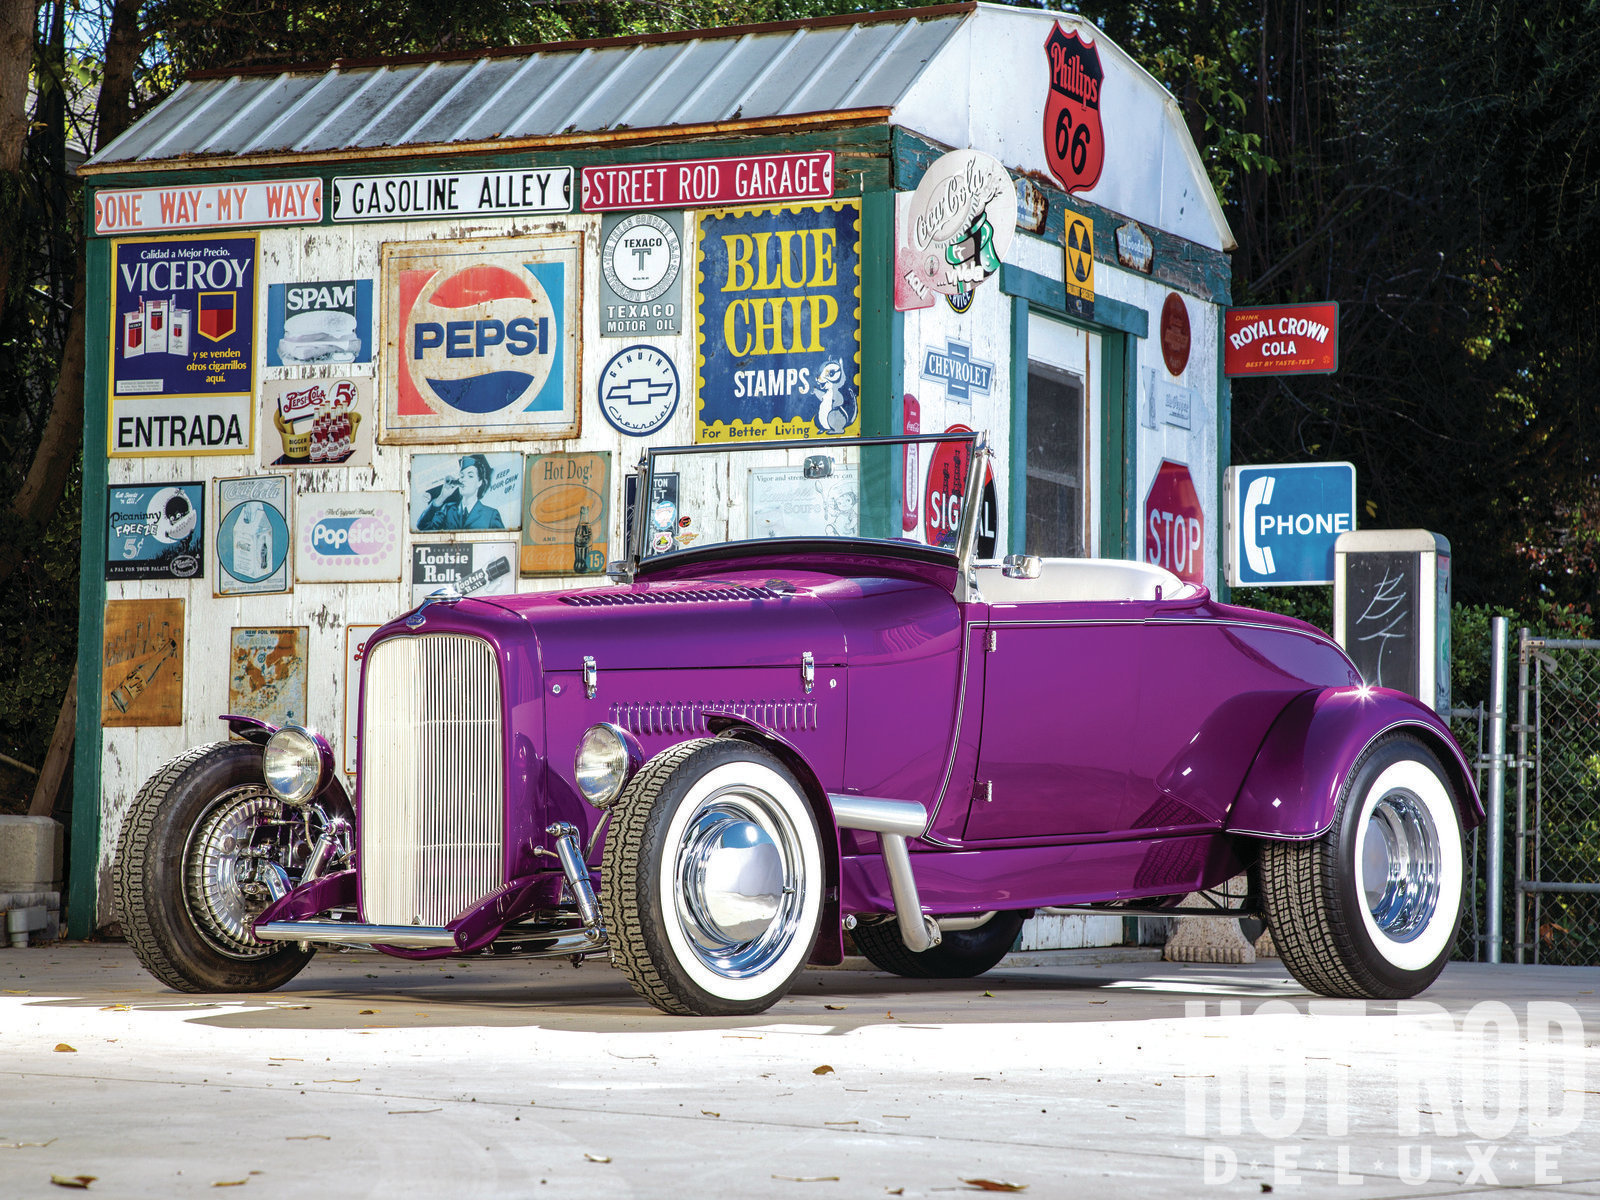 """If this angle of Rich Guasco's '29 highboy doesn't turn you on, you're reading the wrong magazine. The character lines on both the '29 roadster body and the '32 frame, as well as the frame's easy adaptability to the V8, make it easy to understand why rodders went for this combination decades ago. The rubber rake, outside headers, cycle fenders, and louvers all scream """"traditional hot rod!"""" The grille shell has been chopped 3 inches but retains the stock cap and trim."""